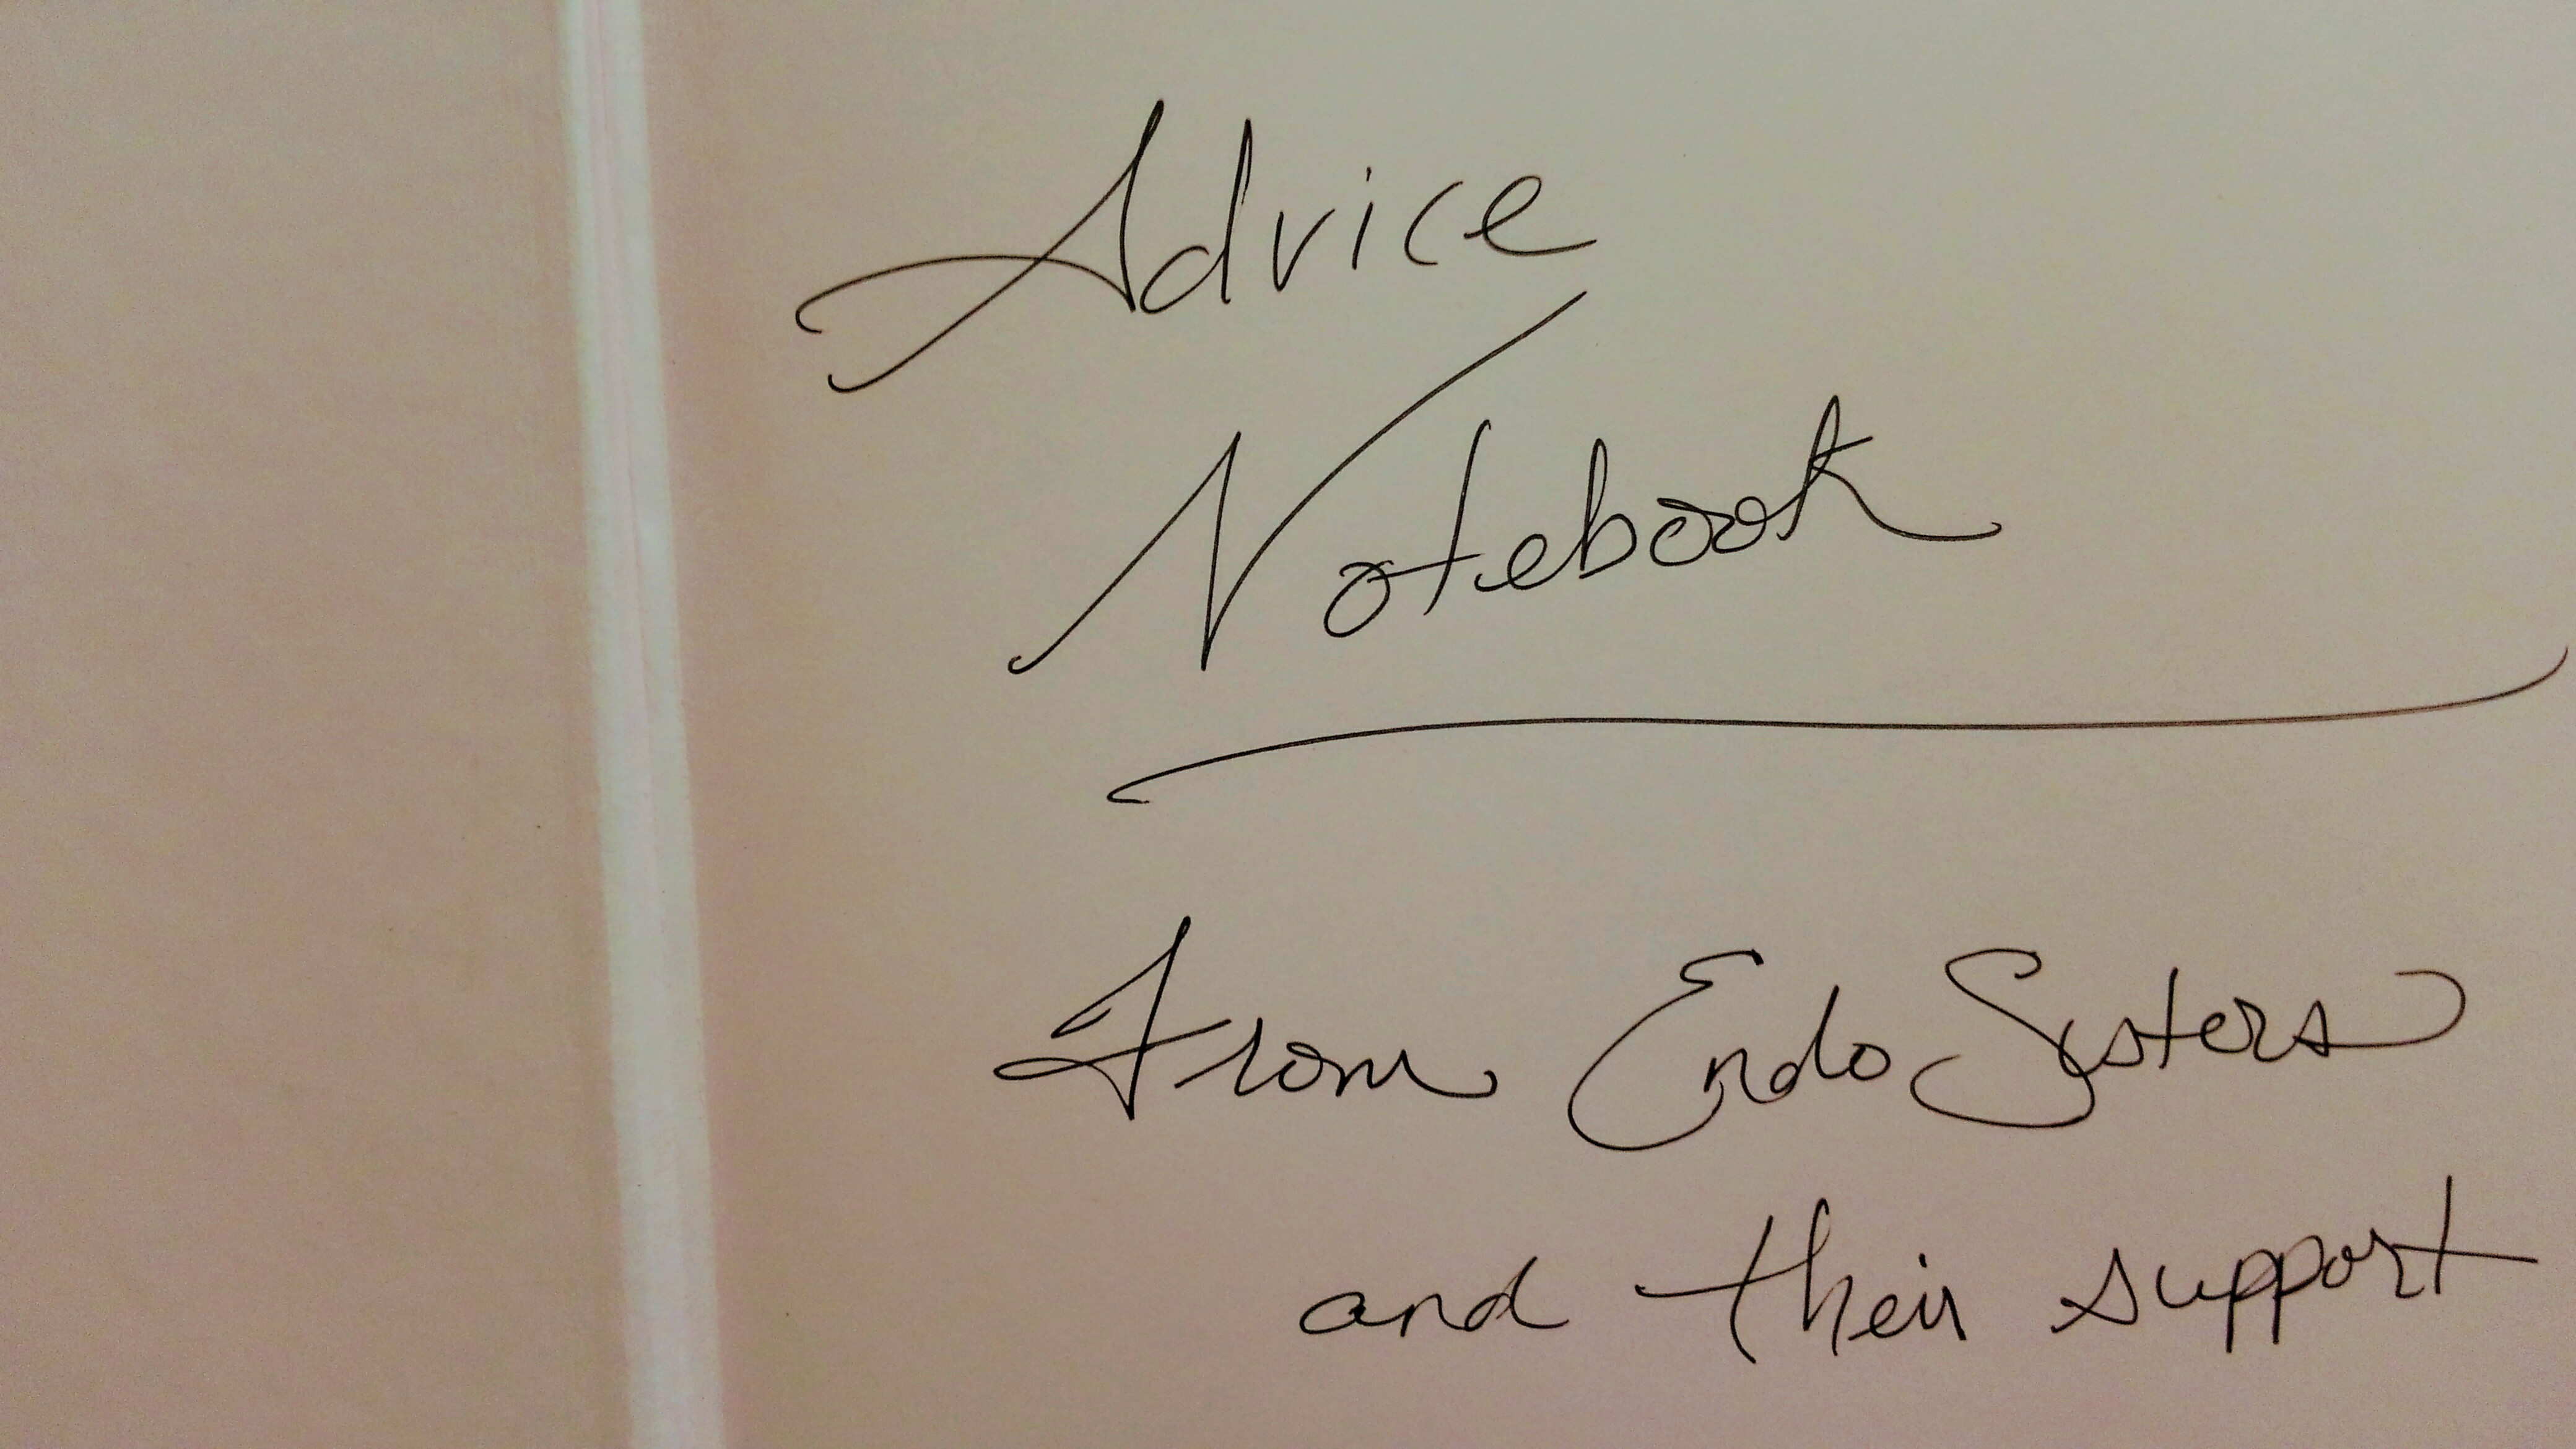 Inscription on a journal: Advice Notebook.  From EndoSisters and their Support